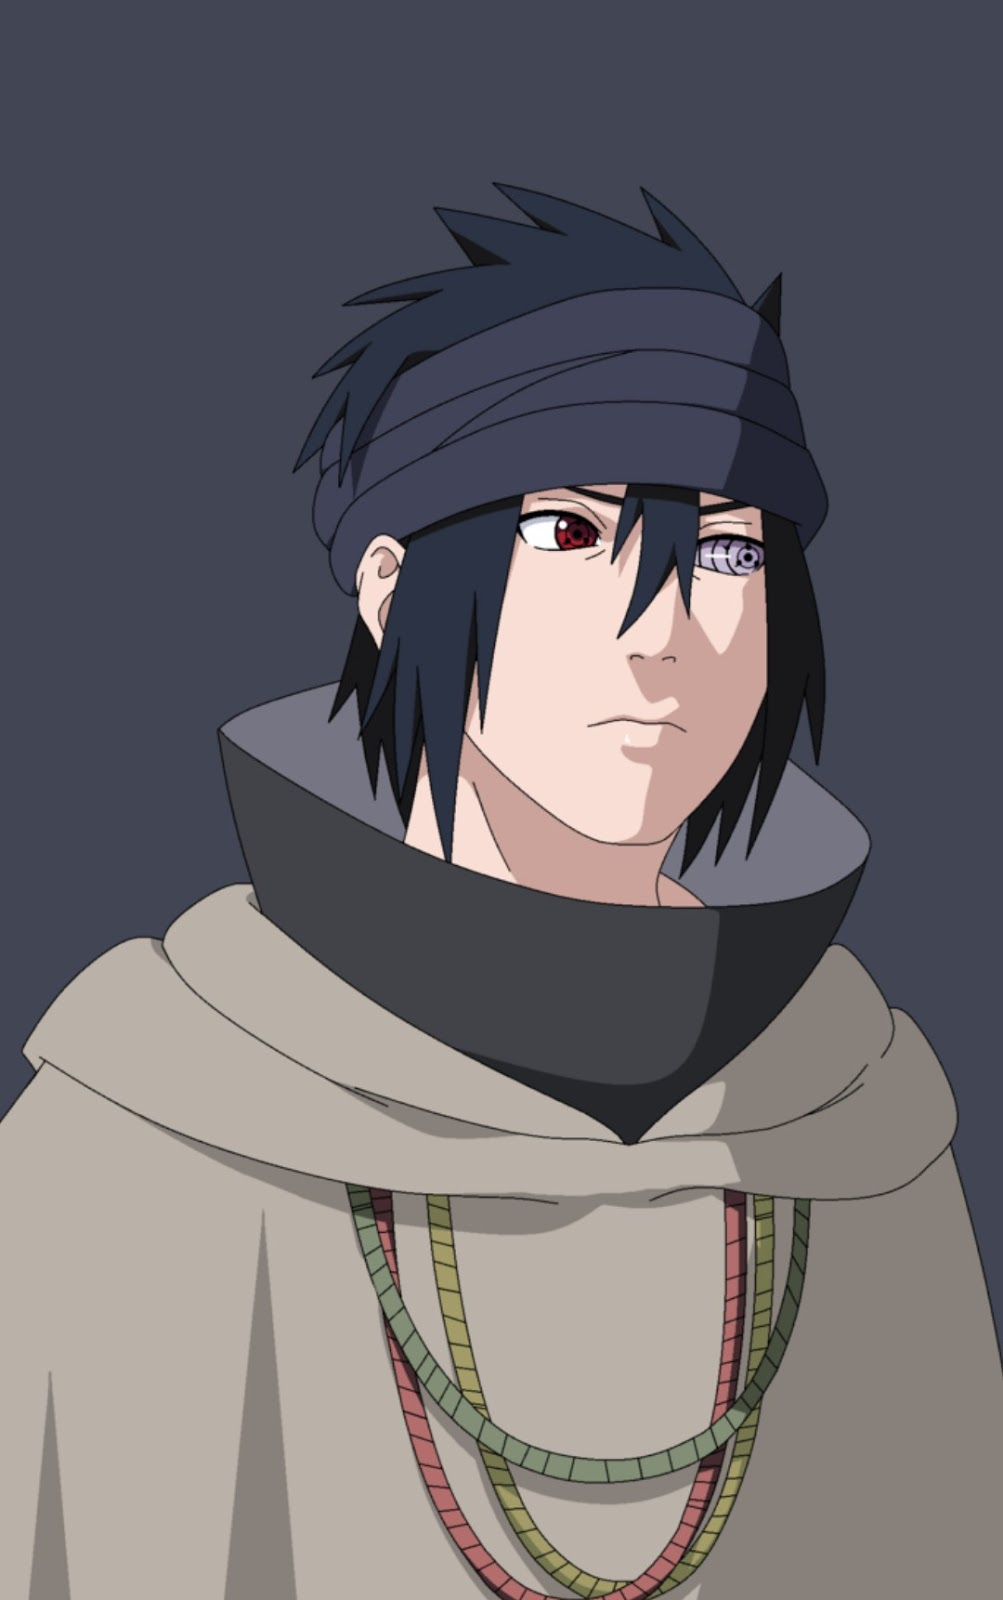 19. Download wallpaper uchiha sasuke vektor untuk android dan whatsApp chat